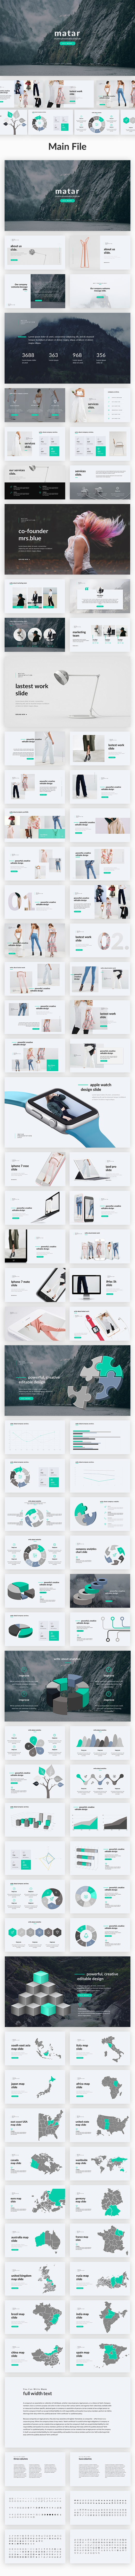 Matar - Creative Keynote Template - Creative Keynote Templates